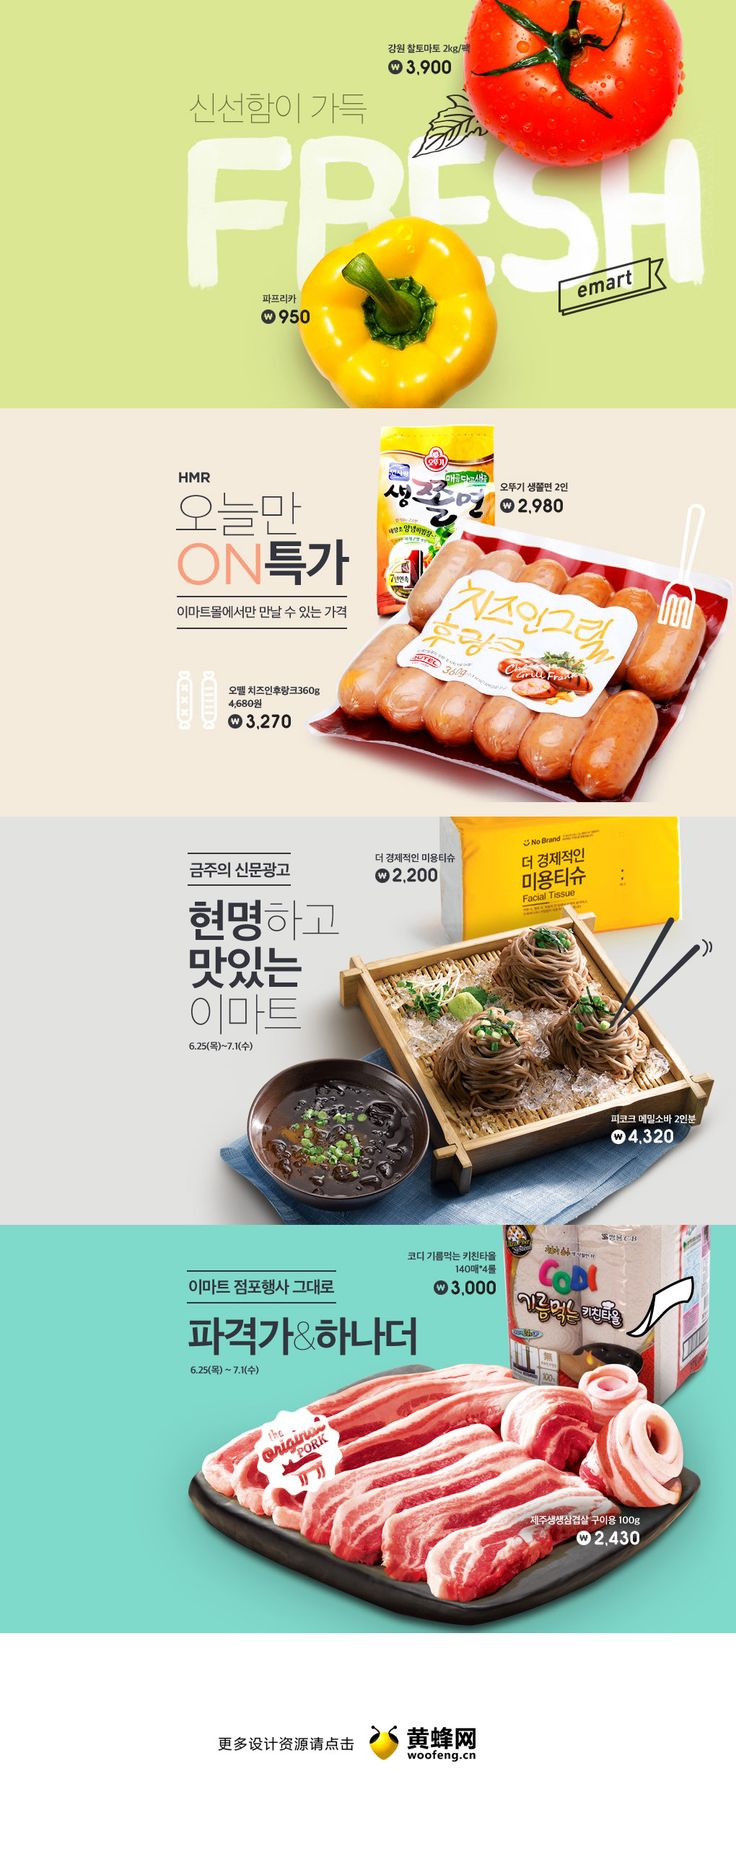 emart购物网站食品banner设计,来源自黄蜂网http://woofeng.cn/